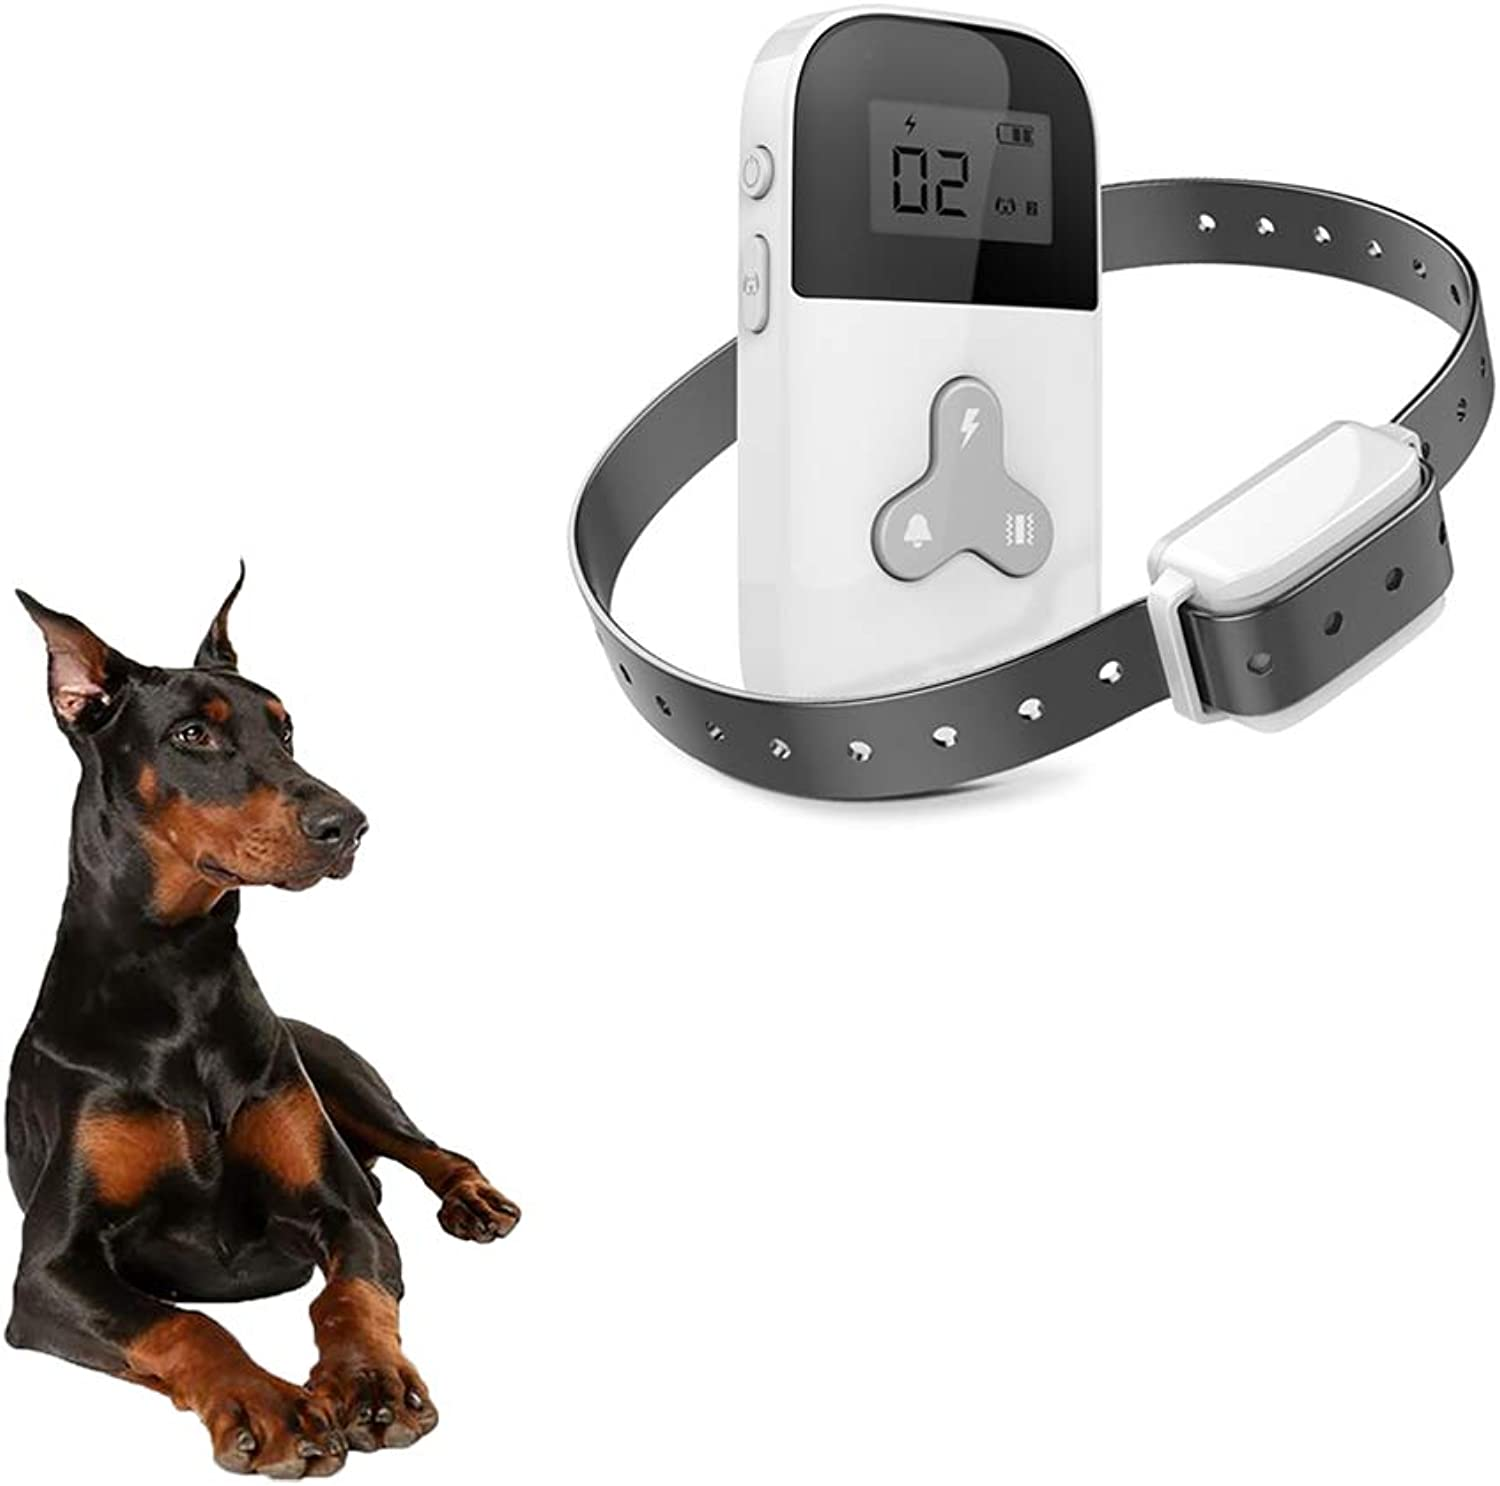 Dog Training Collar with Remote  300 Meters Range & Waterproof Receiver & LCD Display, Adjustable Small Dog AntiBarking Collar with 15 Level Shock &Vibration